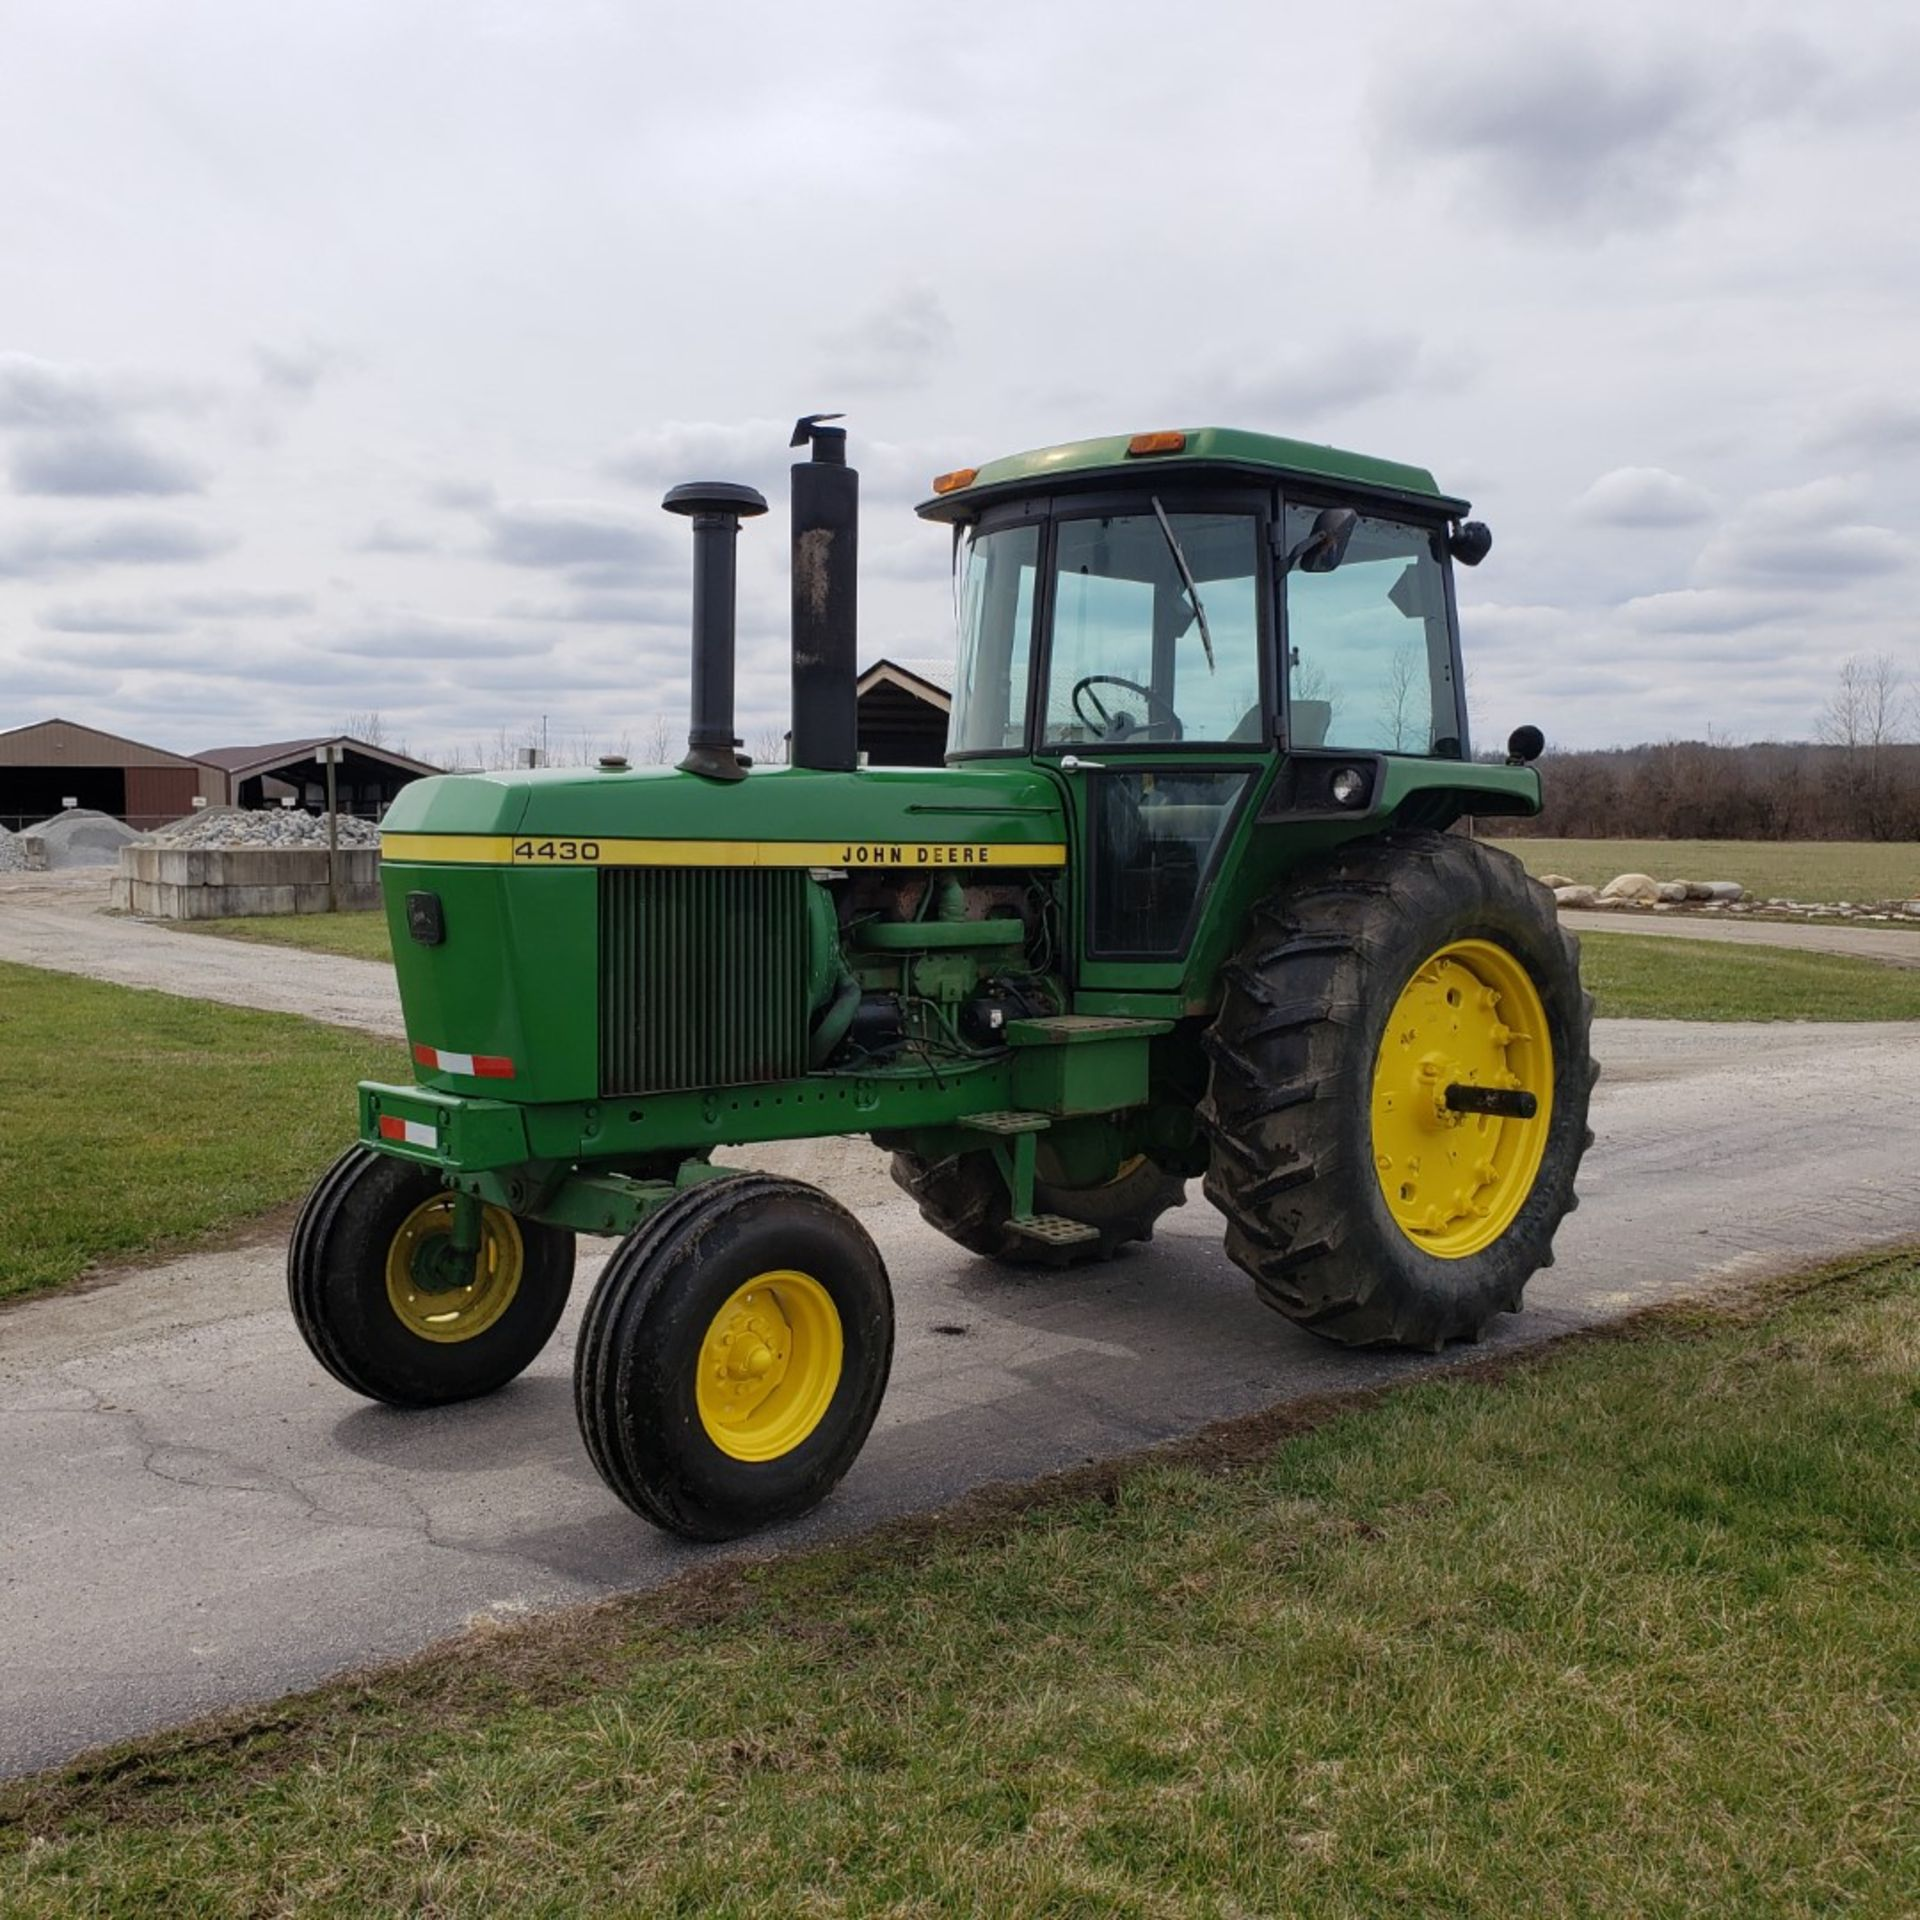 Lot 32 - John Deere Model 4430 H Tractor w/ Enclosed Cab, 7520 Hours, s/n 030228R